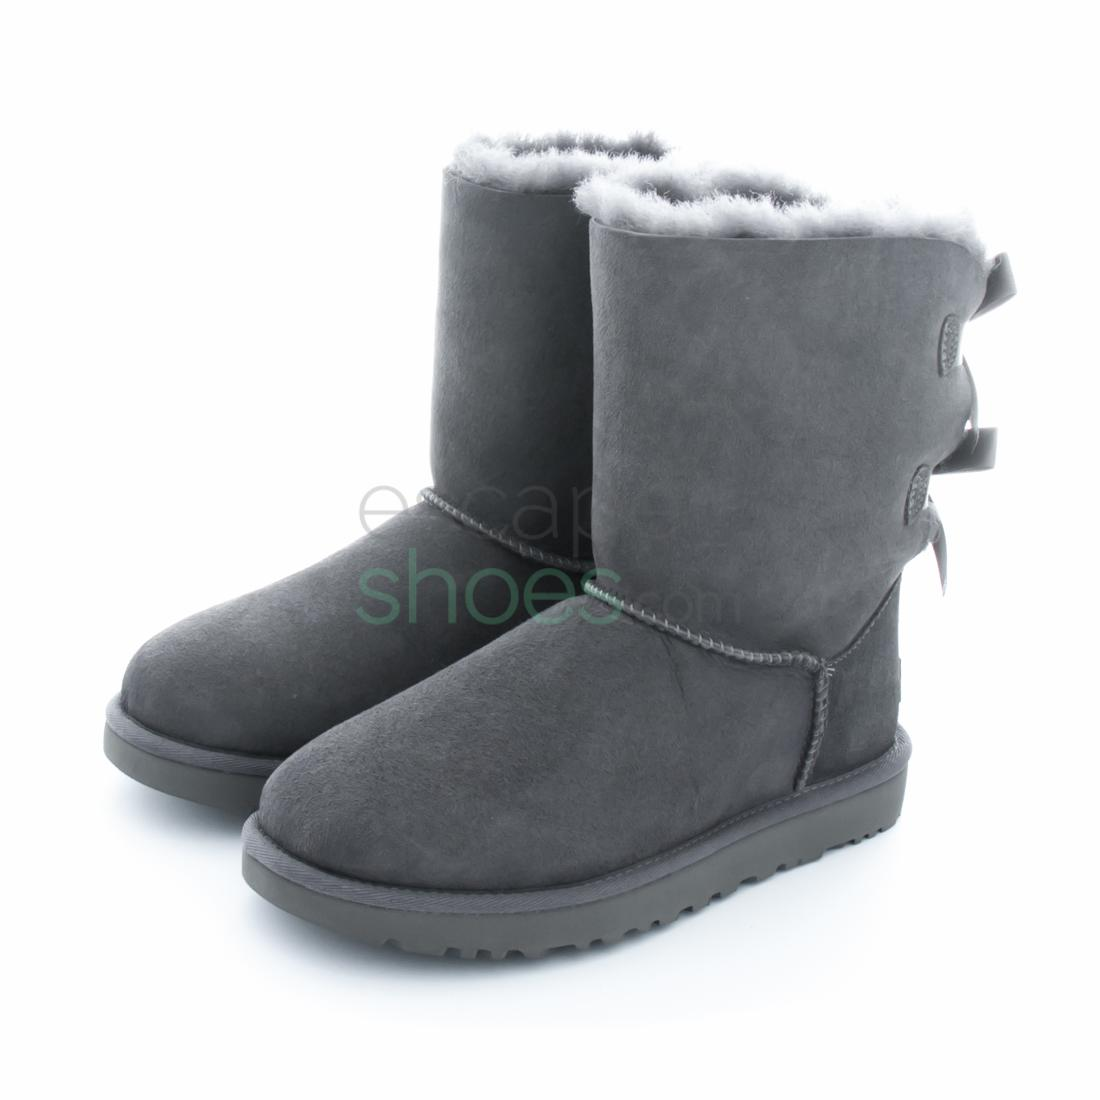 8fa09b6615d9 Buy your Boots UGG Australia Bailey Bow II Grey 1016225 here ...